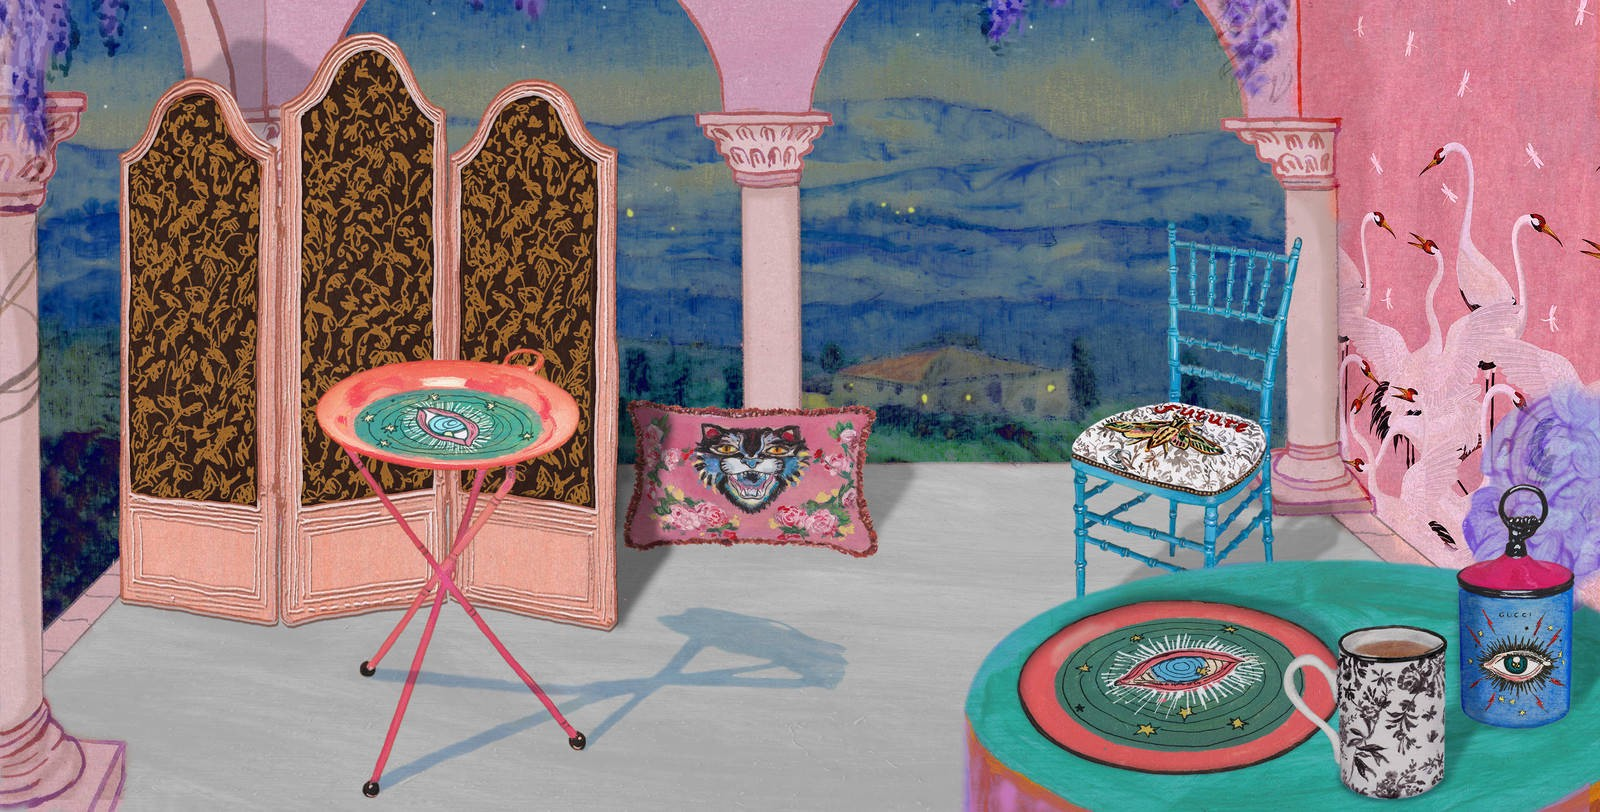 SummerLabelSpotlights Guccis Home Decor Line Is Not For The Faint Hearted